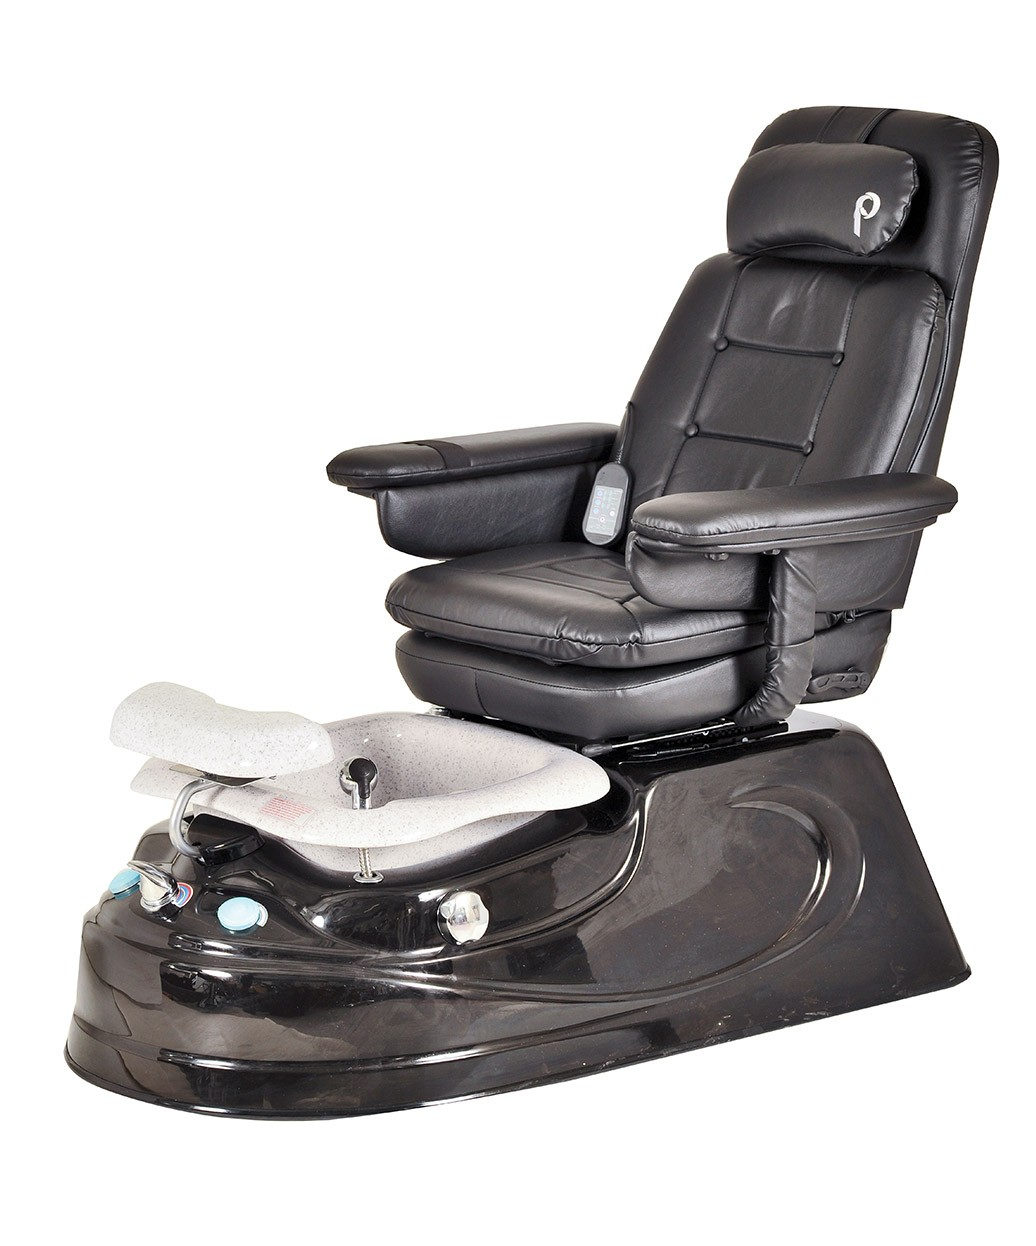 European Touch Pedicure Chair Pibbs Ps74 Granito Pipeless Pedicure Spa